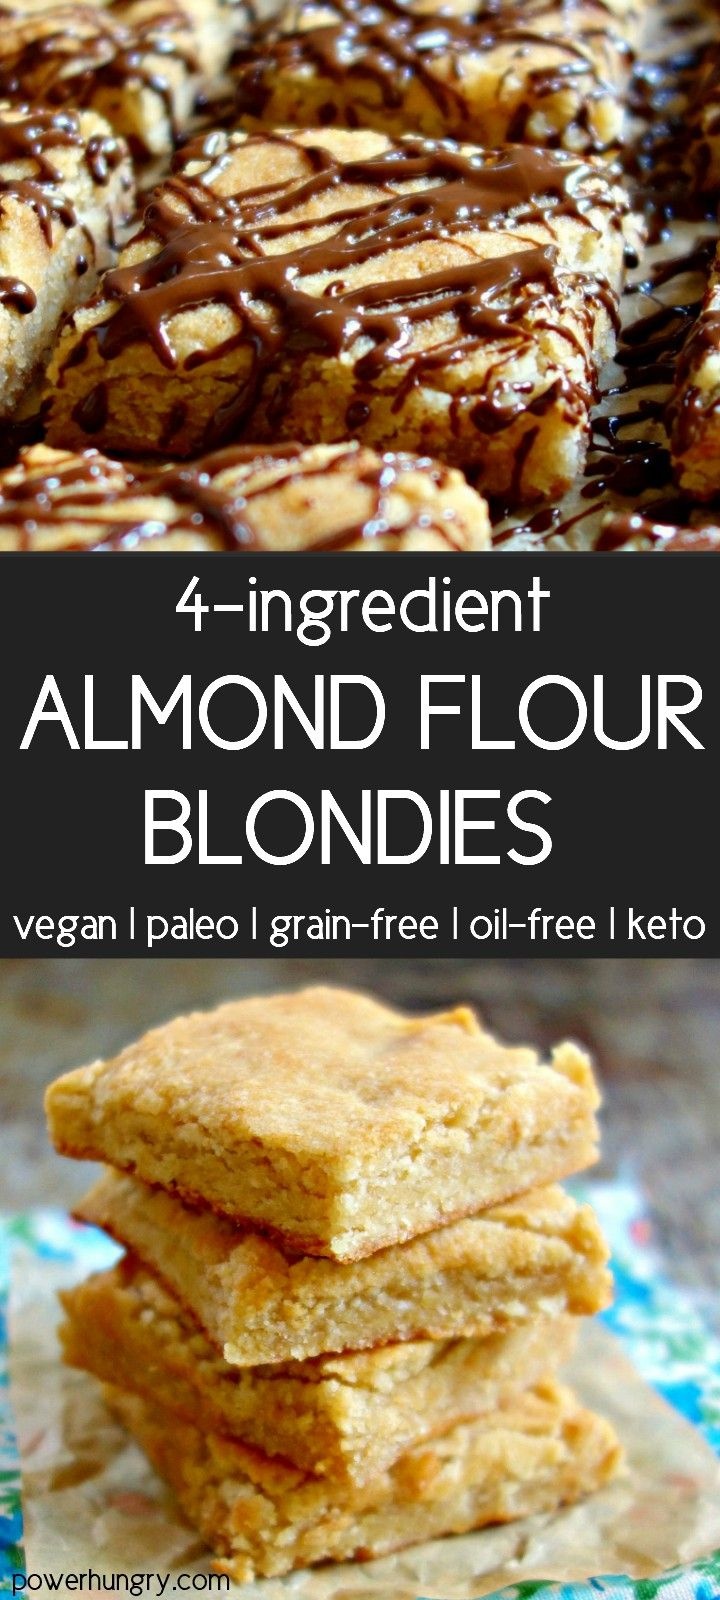 4 Ingredient Almond Flour Blondies Vegan Grain Free Paleo Keto Option